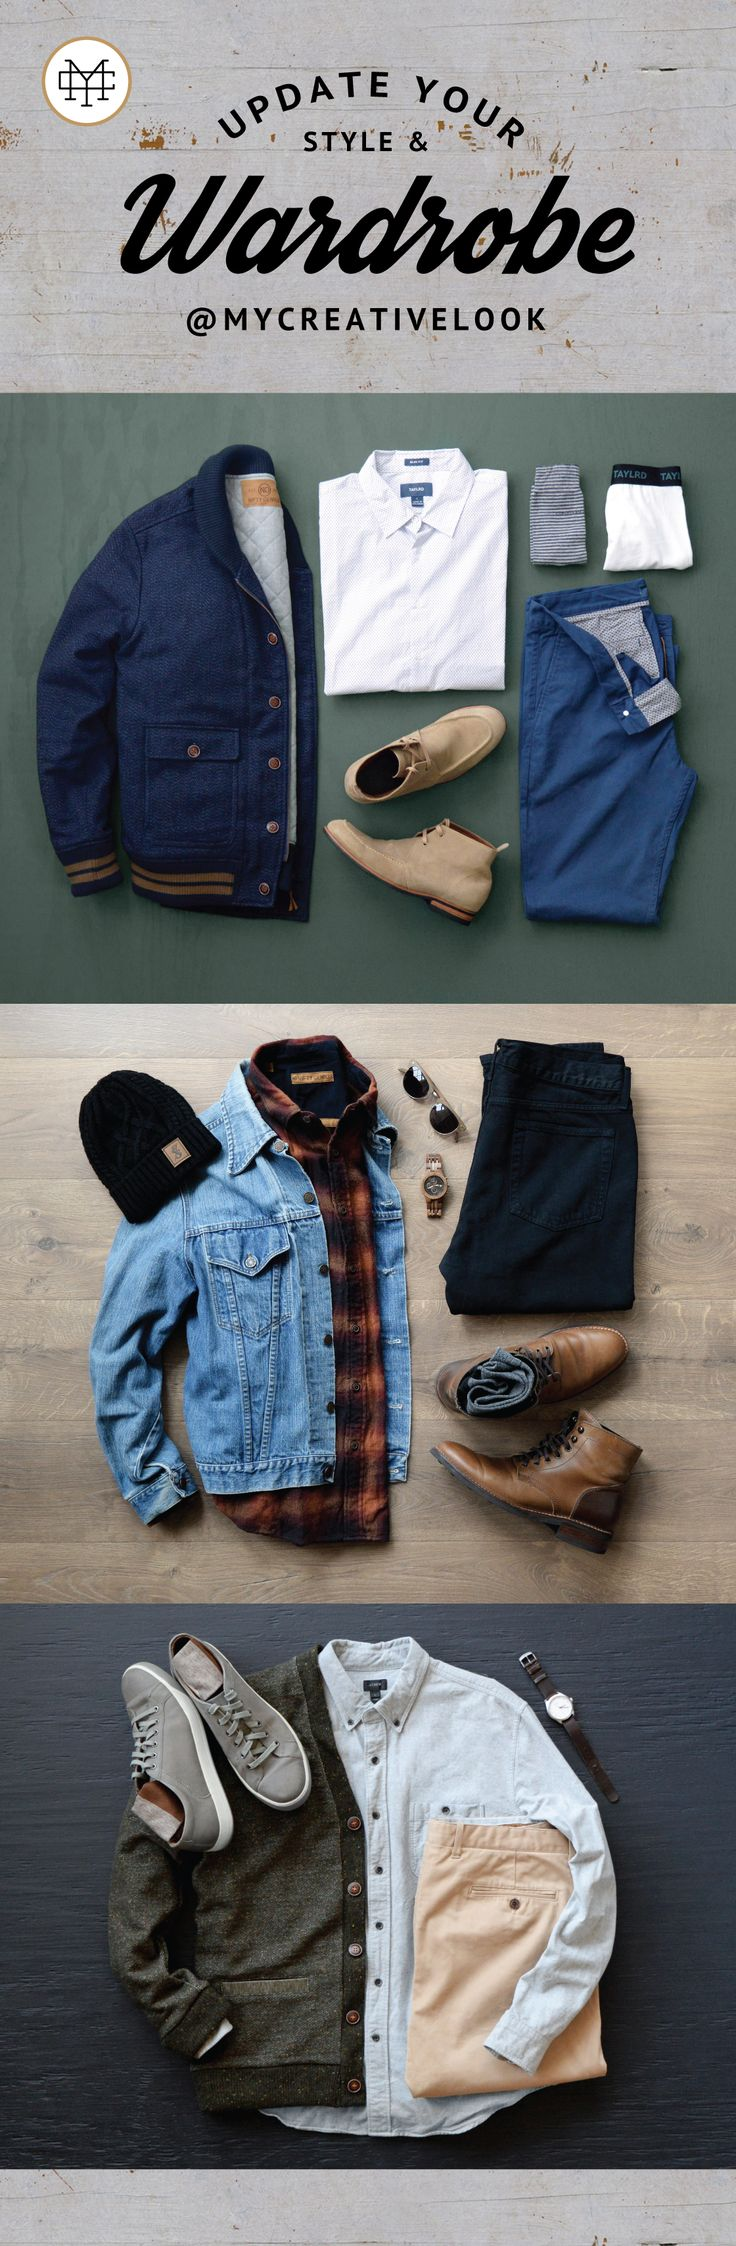 Update Your Style & Wardrobe by checking out Men's collections from MyCreativeLook | Casual Wear | Outfits | Fall Fashion | Boots, Sneakers and more. Visit mycreativelook.com/ #wardrobe #lookbook #mensoutfits #menswear #menscollections